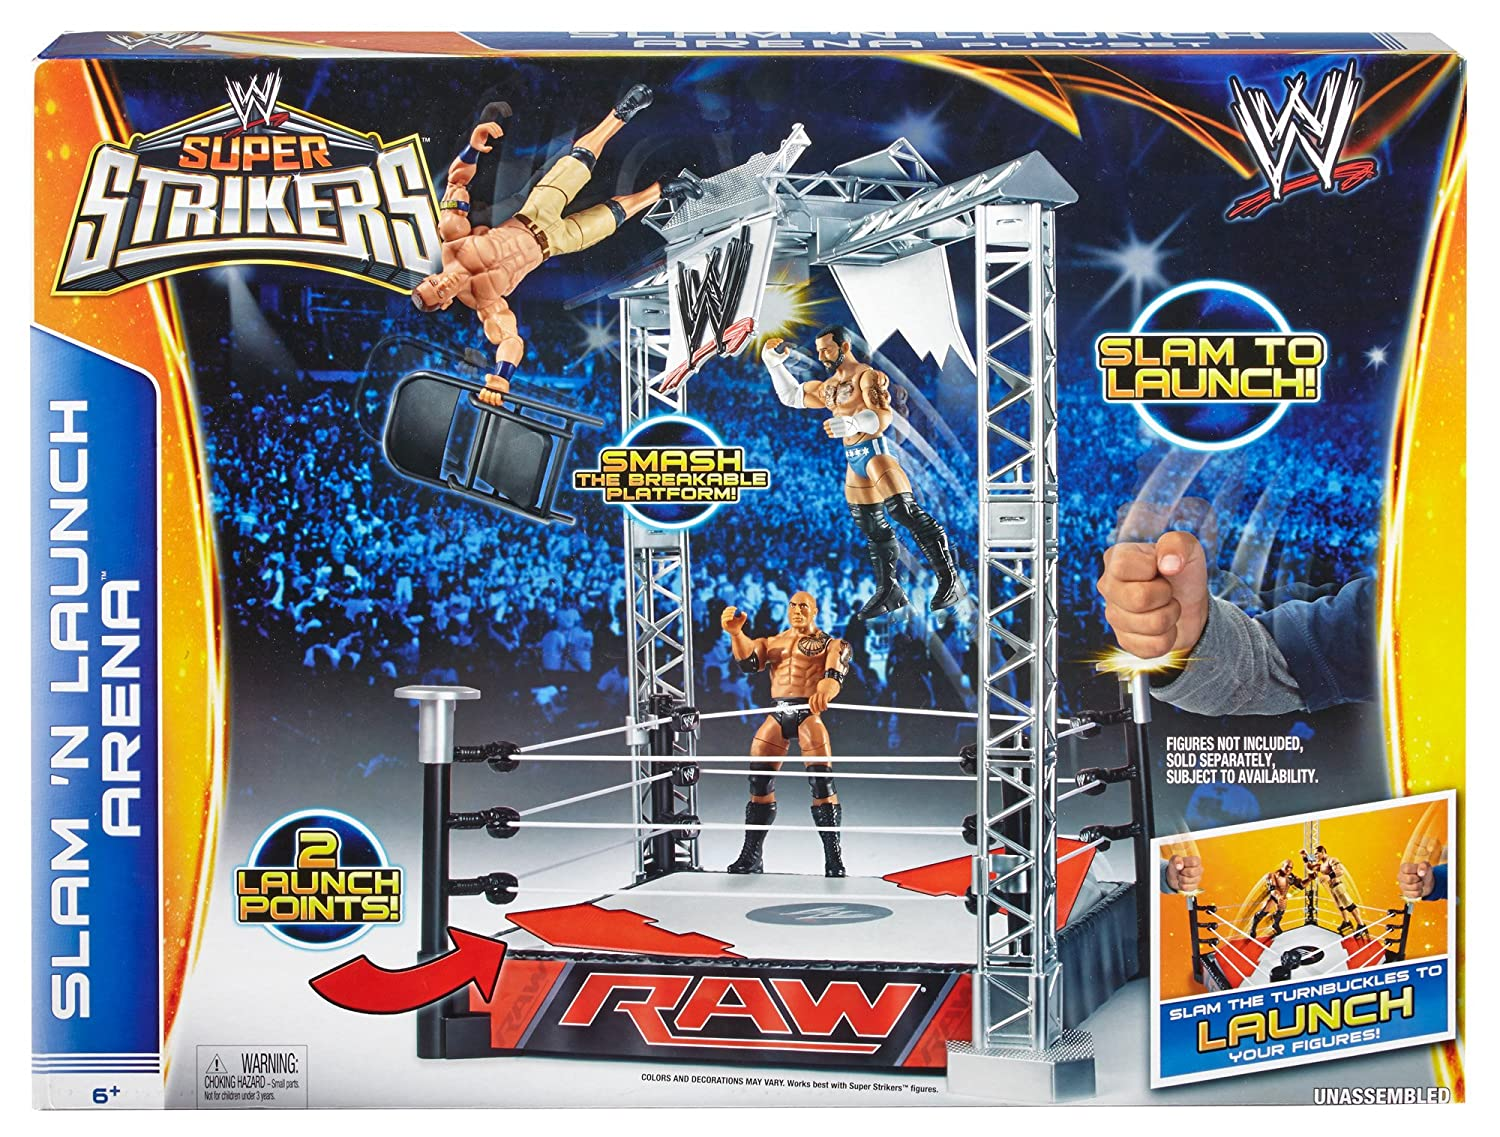 9eb158e20716 WWE Raw Toy Playset - Super Strikers Slam N Launch Arena - World Wrestling  Entertainment Figure Ring: Amazon.co.uk: Toys & Games